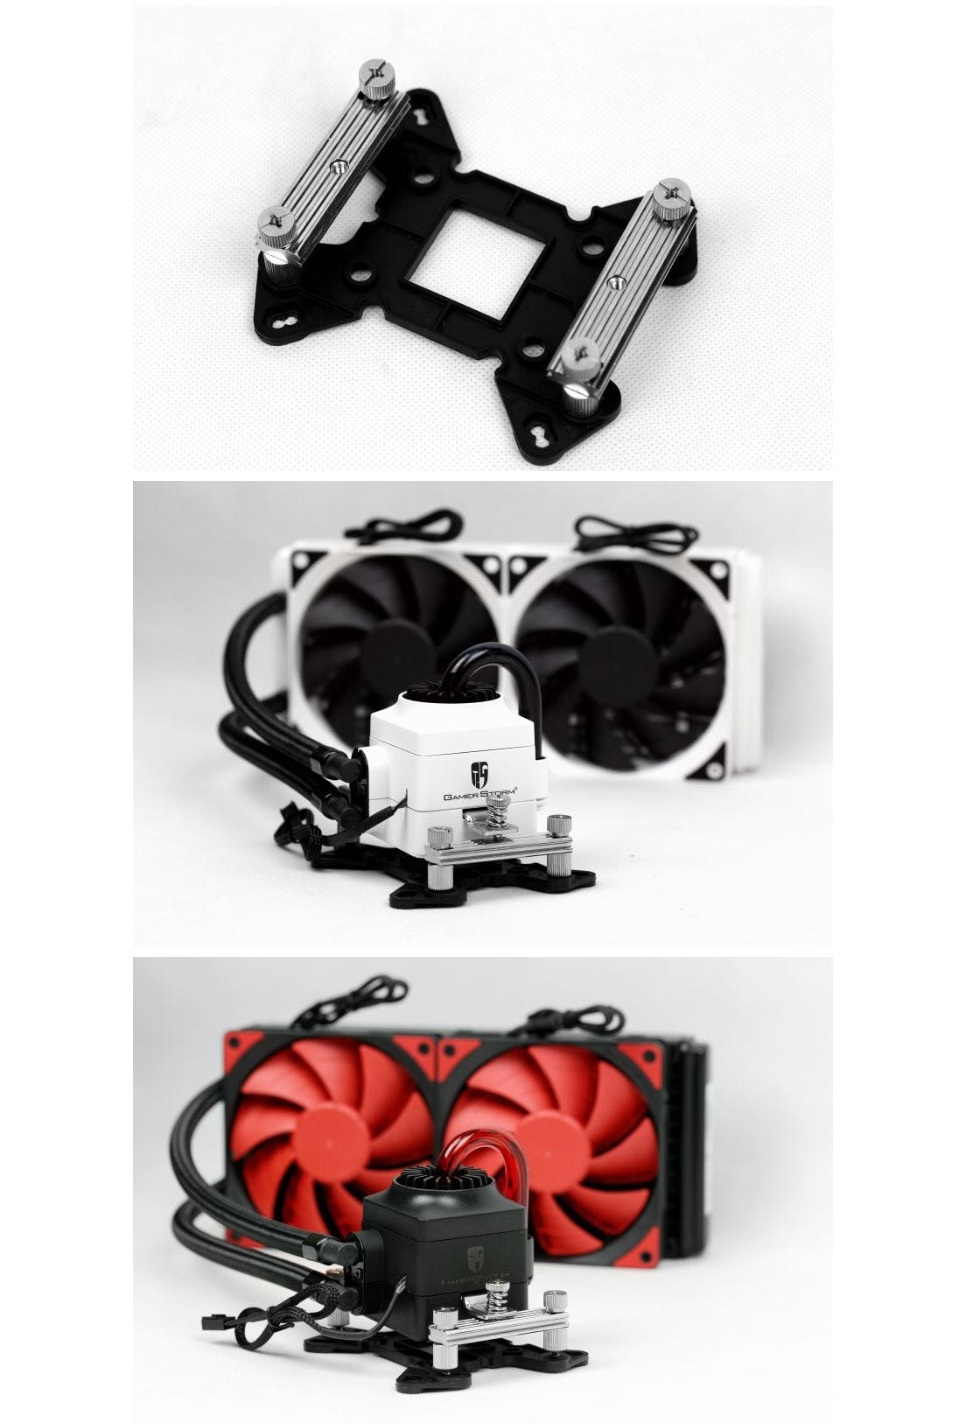 DeepCool Gamer Storm Captain EX Liquid Cooling System AM4 Mounting Kit